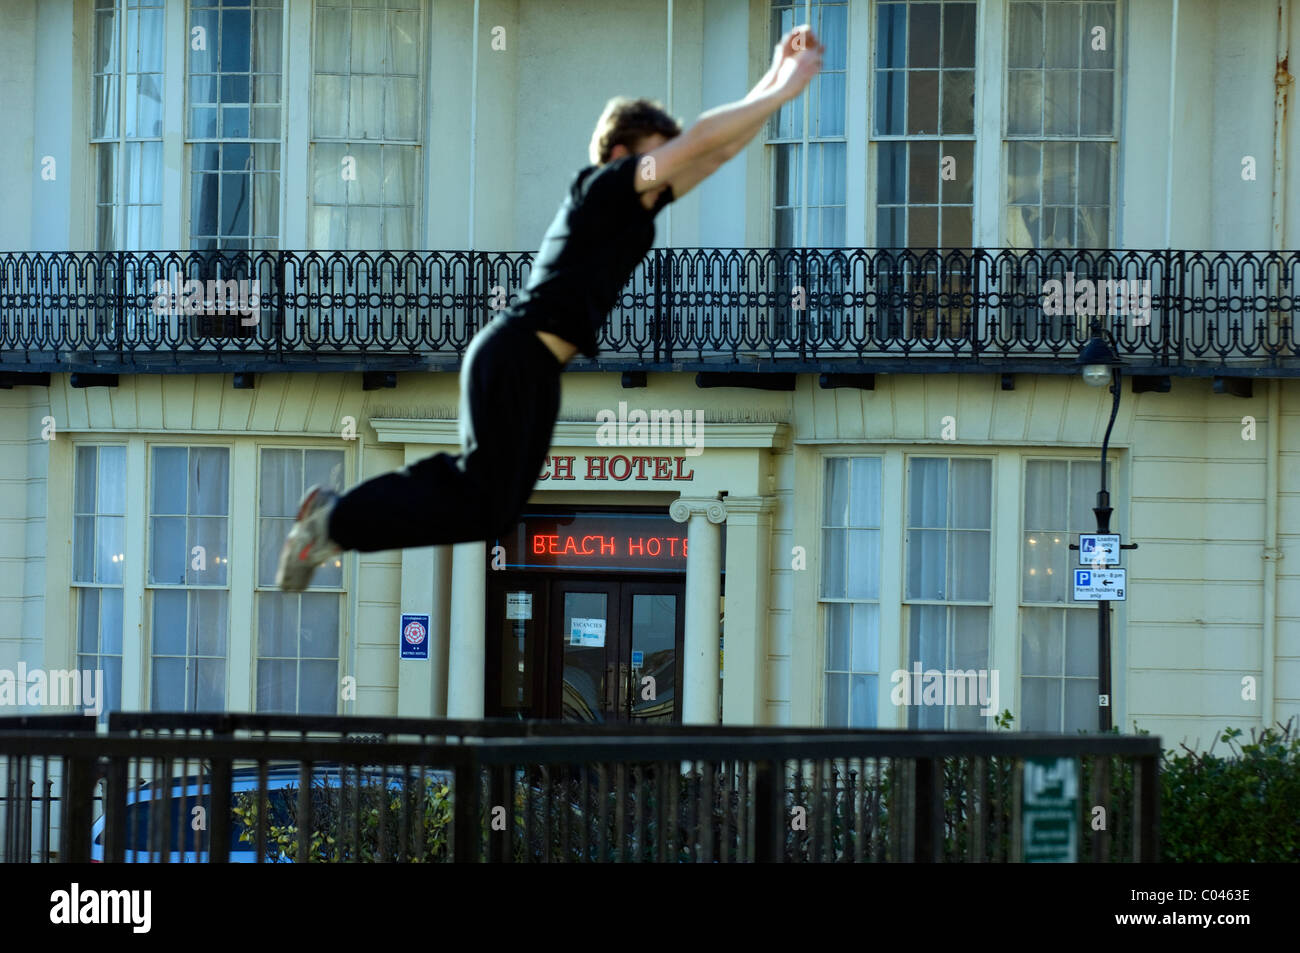 Ben Ockwell practices Parkour, or  FreeRunning, in Regency Square, Brighton, East Sussex, England Britain UK - Stock Image